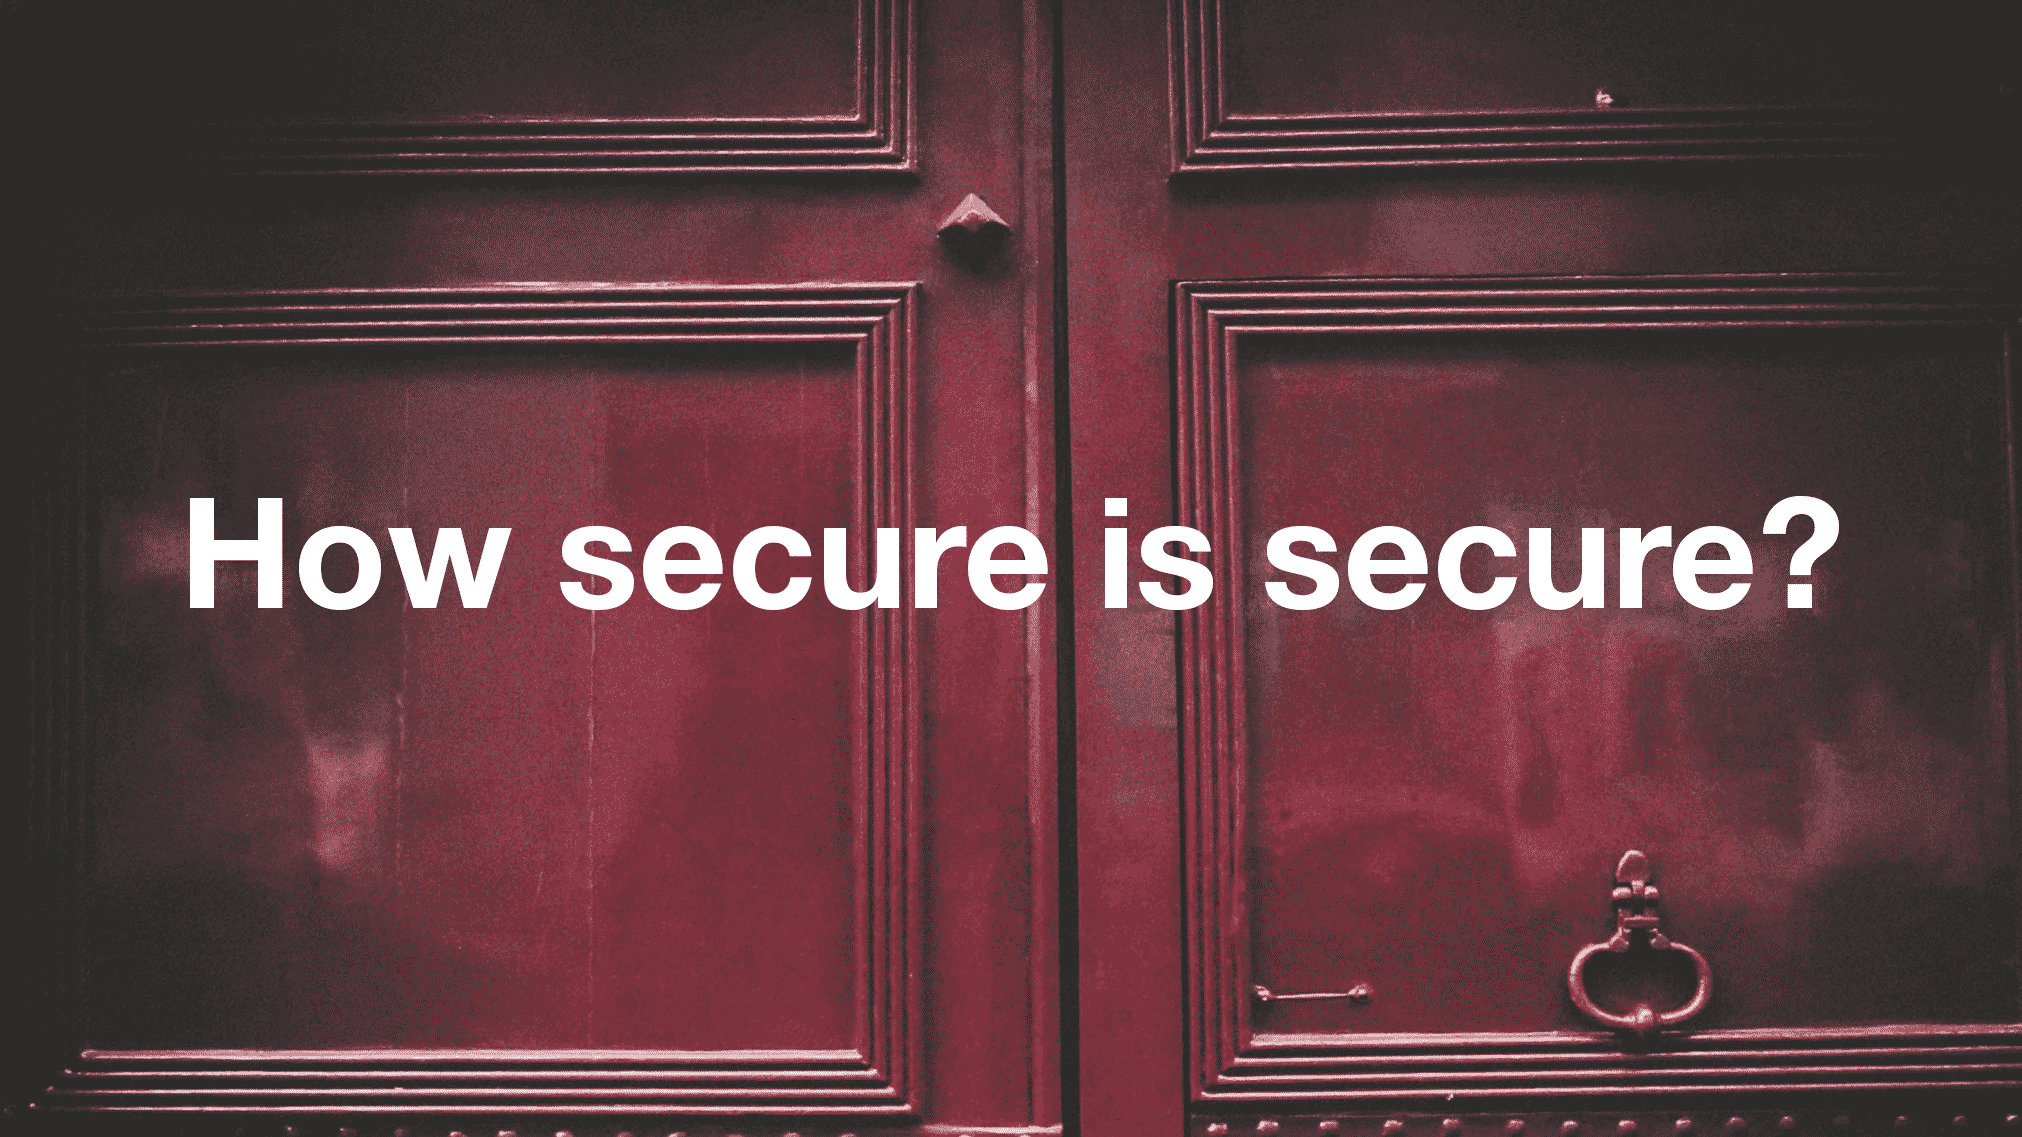 How secure is secure?